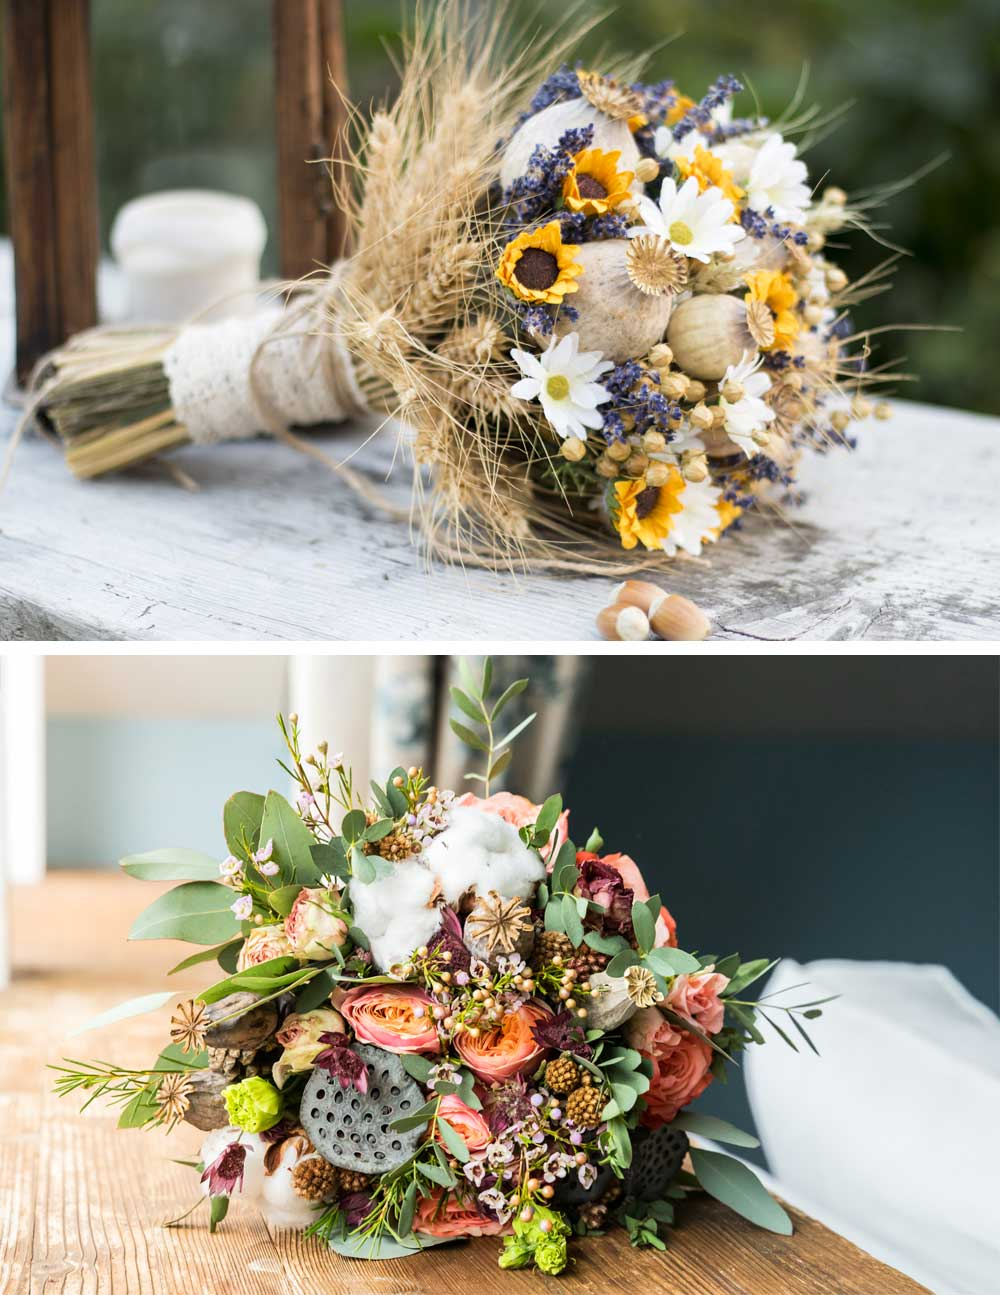 Bouquet Sposa Halloween.Bridal Bouquet 150 Images Of The Most Beautiful Our Best Style